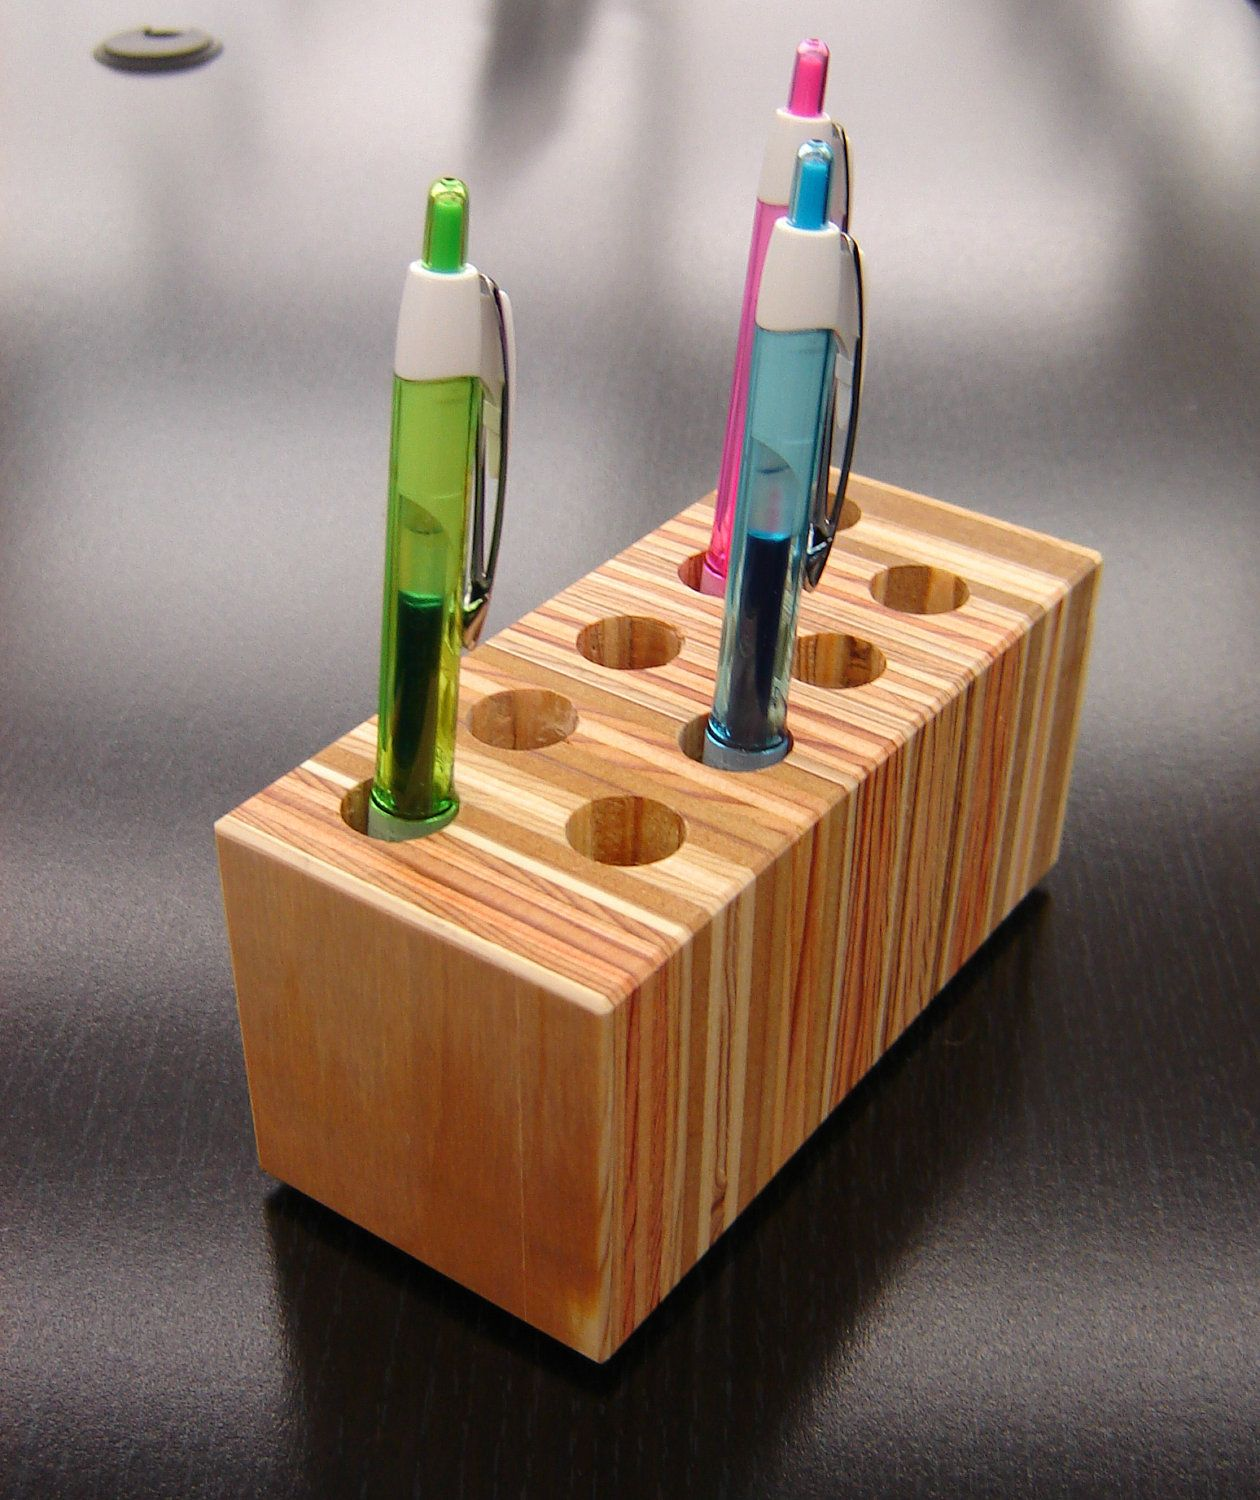 Pen And Pencil Holder For Desk Pencil Holder Desktop Organizer From Repurposed Wood 25